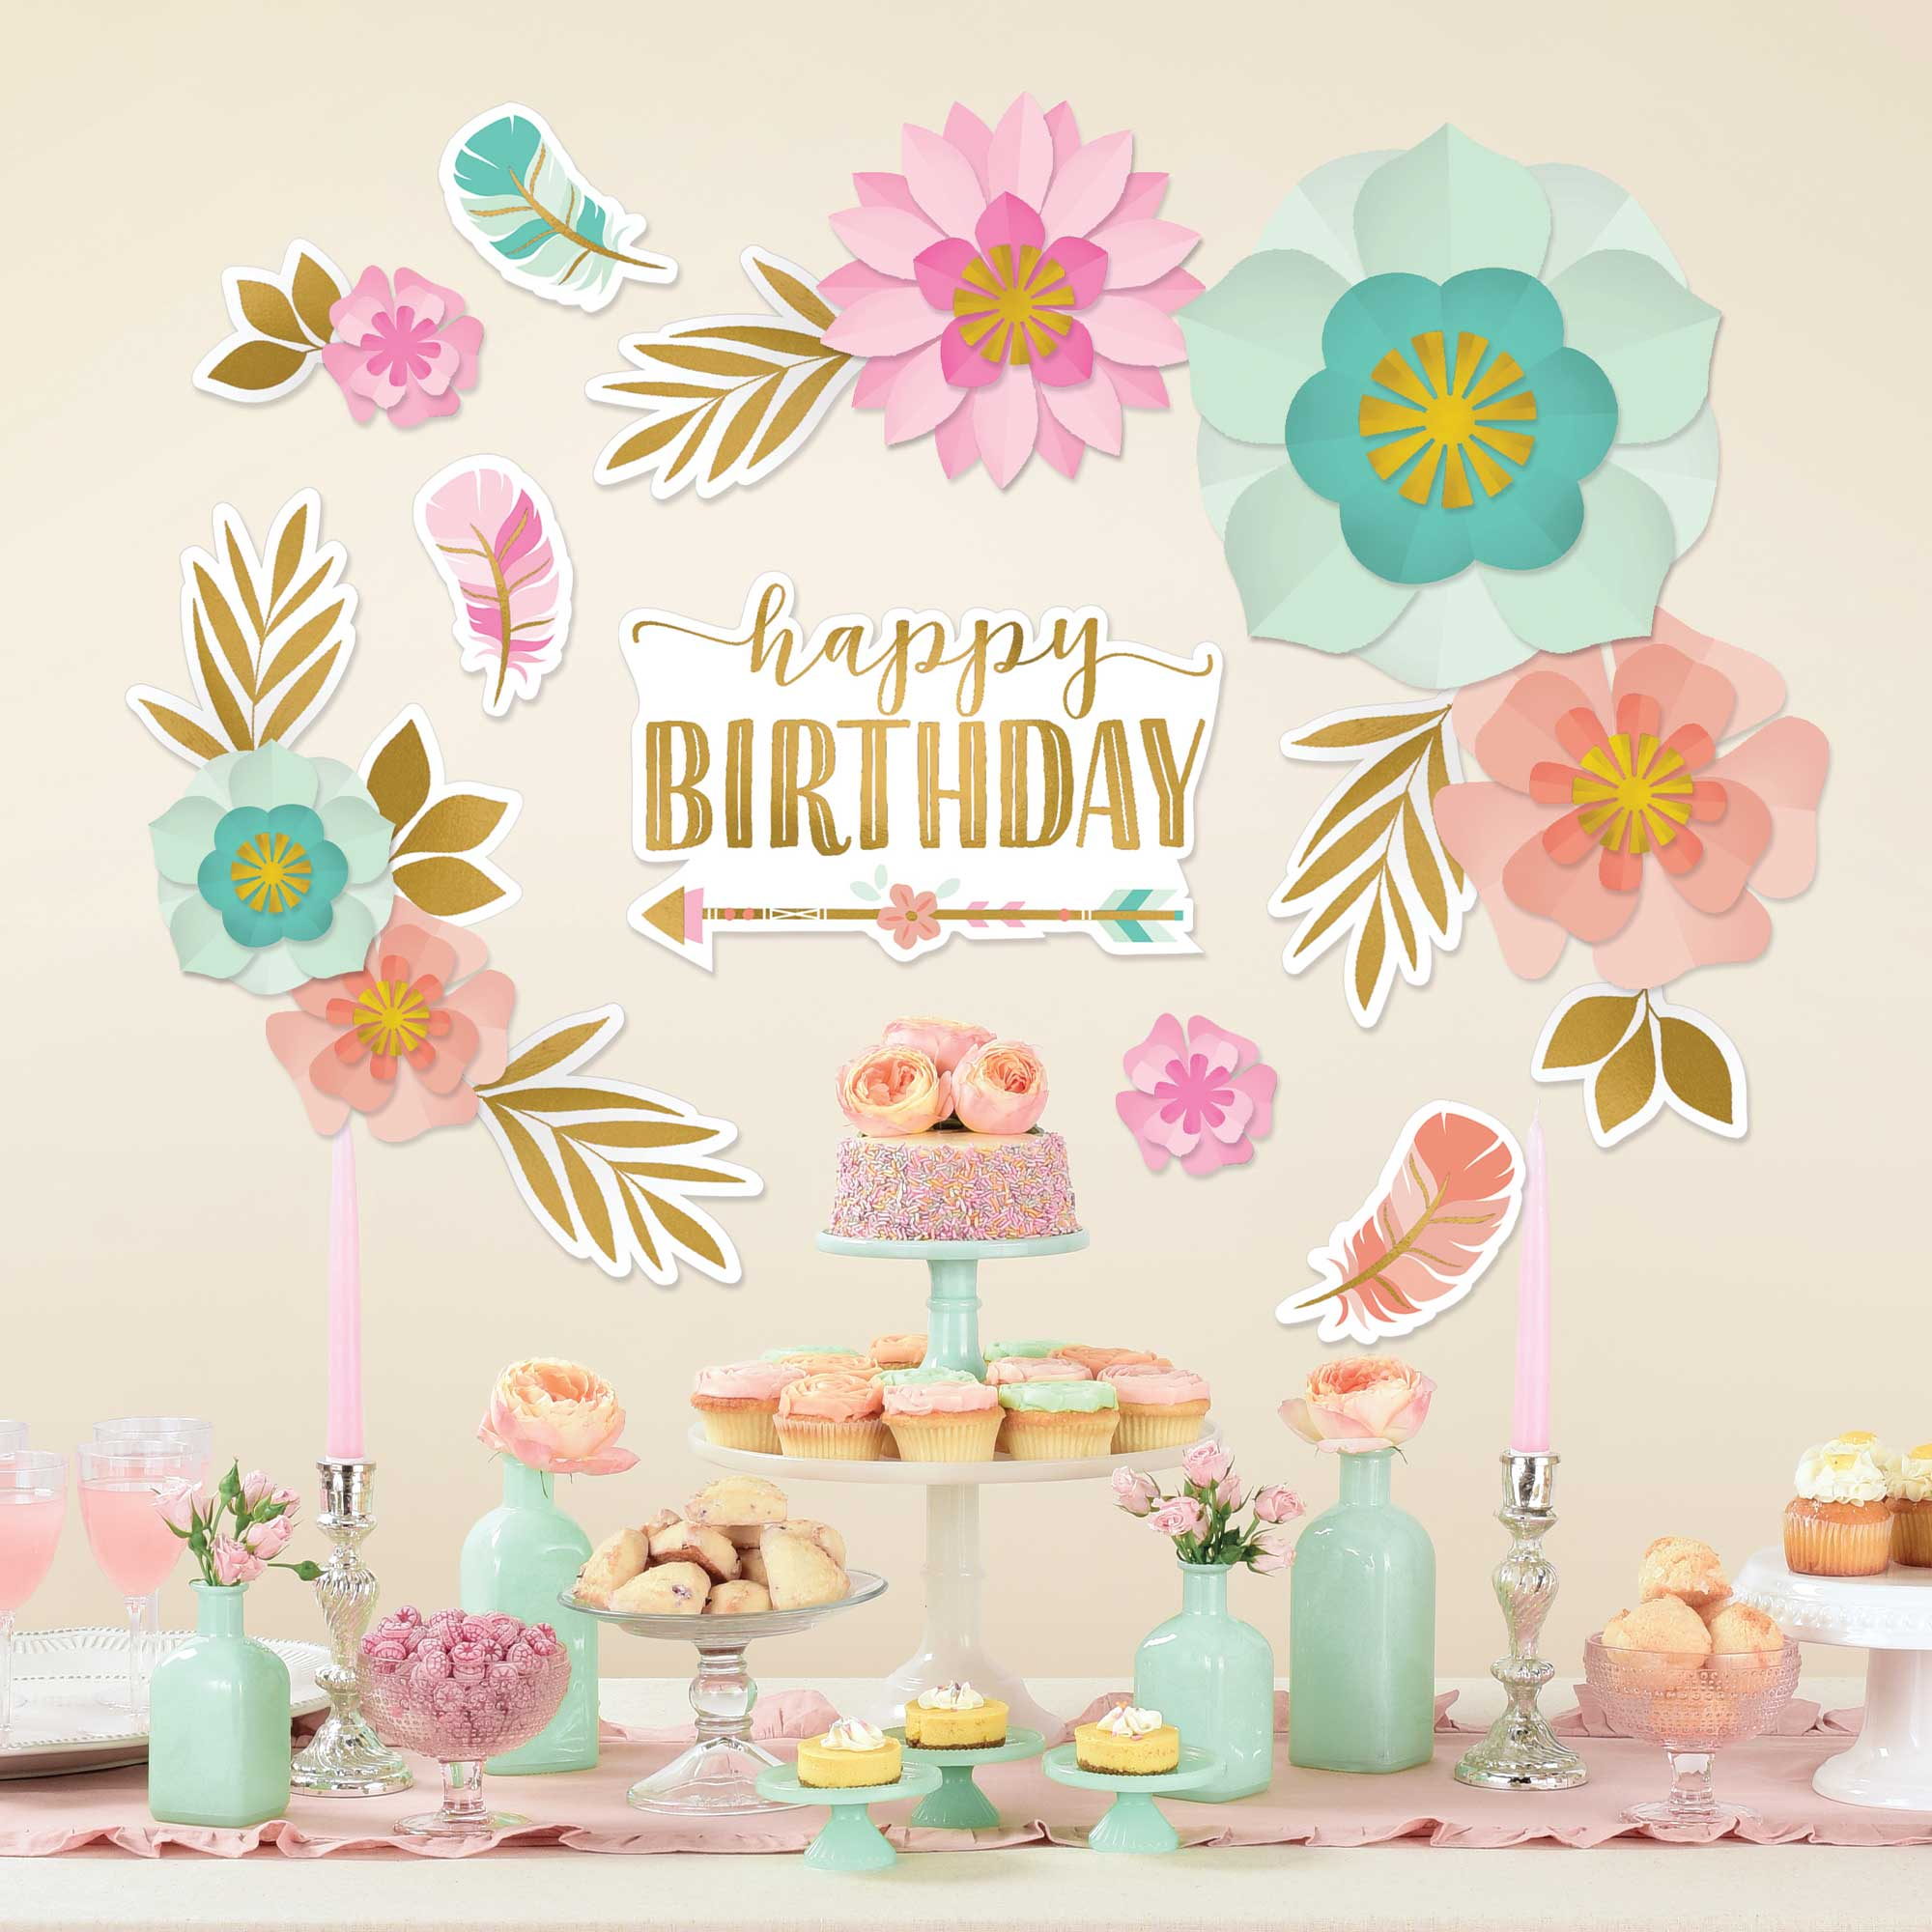 Boho Birthday Girl Backdrop Wall Decorating Kit - Party Savers